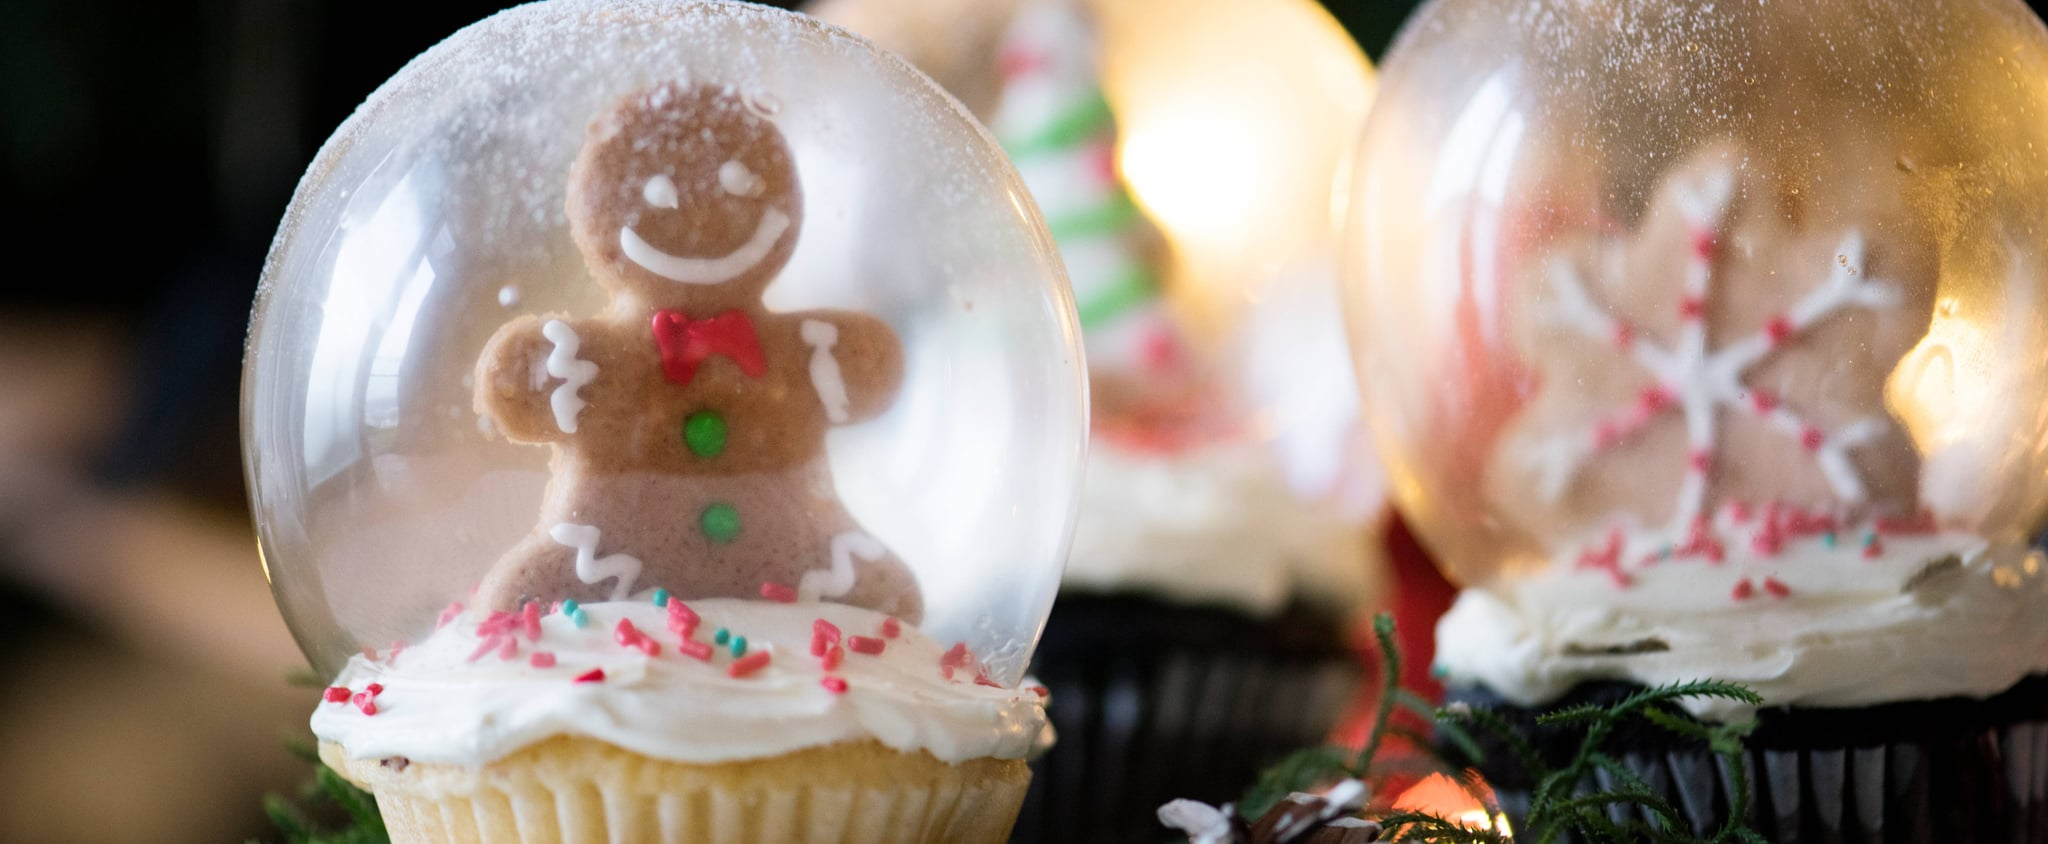 How to Survive the Festive Season as an Introvert